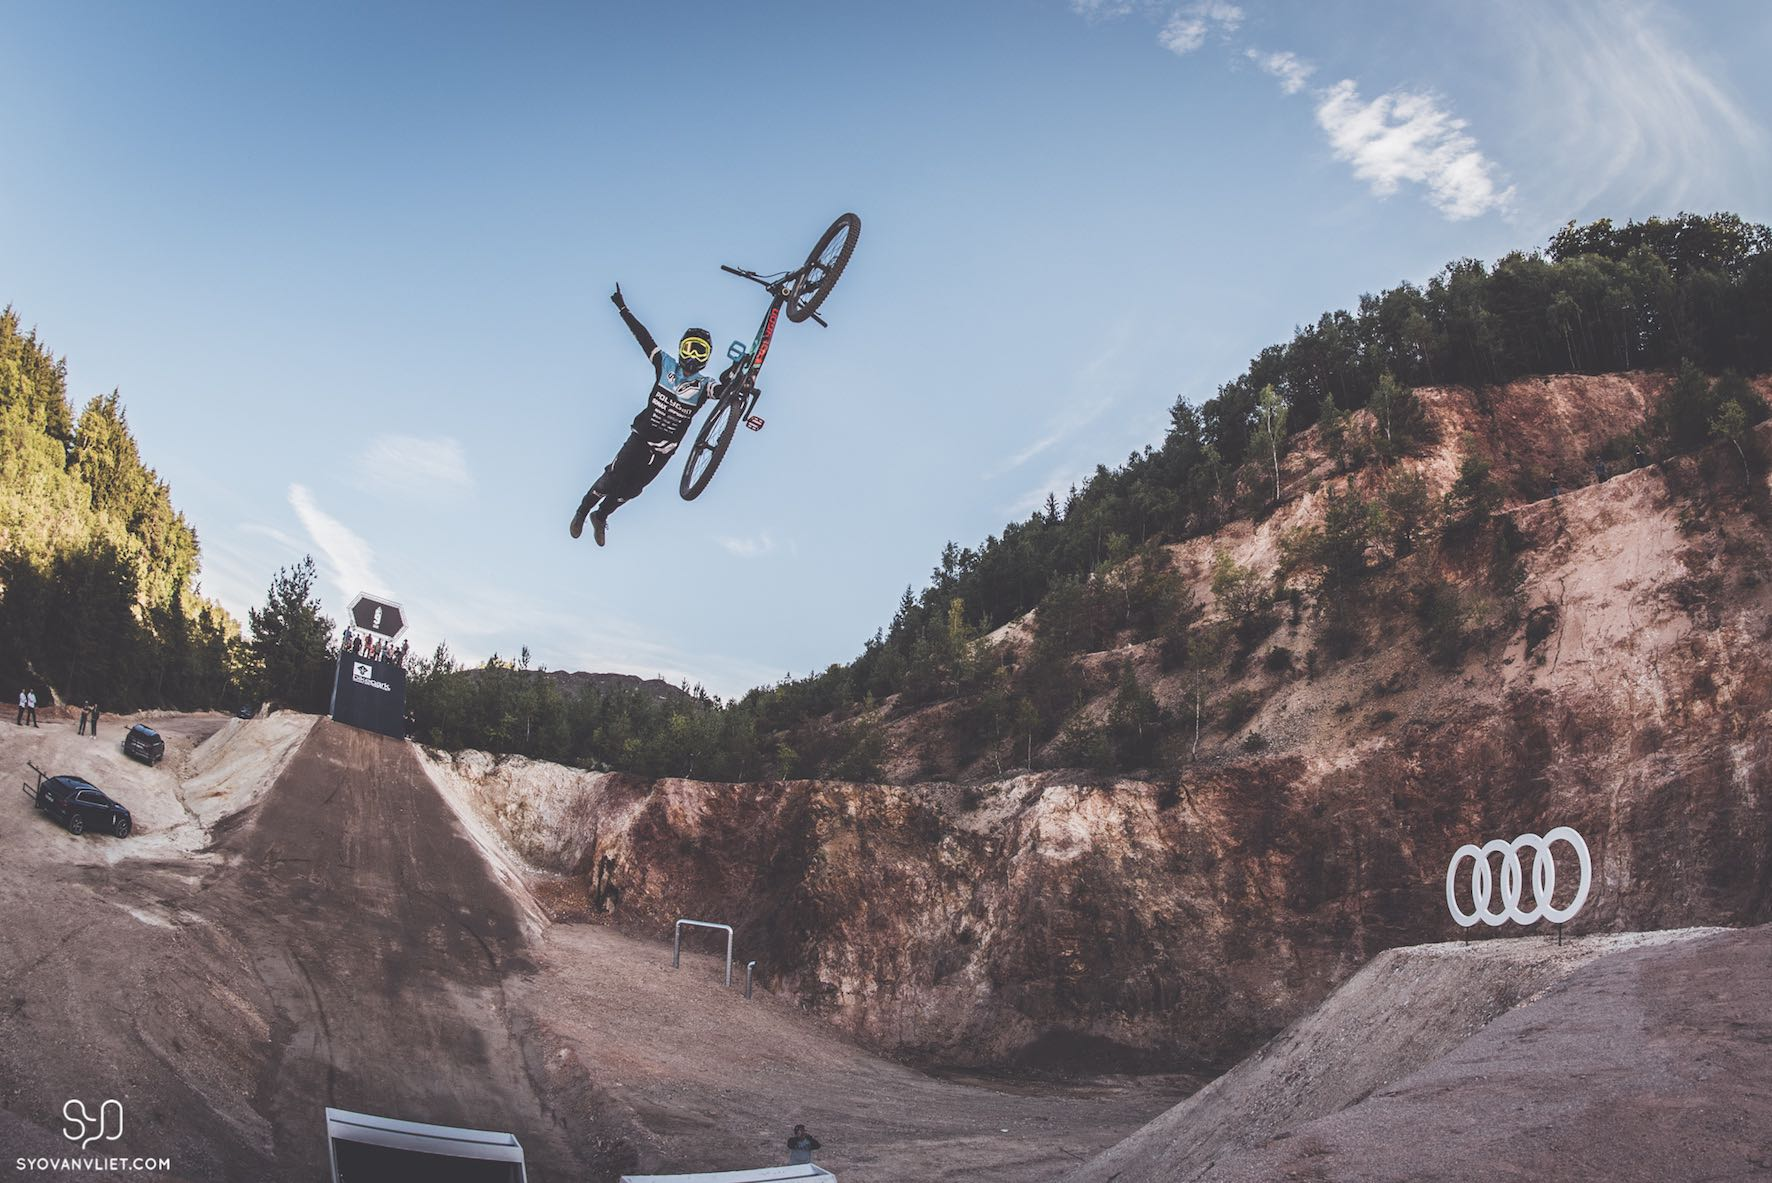 Interview with Sam Reynolds about the Audi Nines MTB event